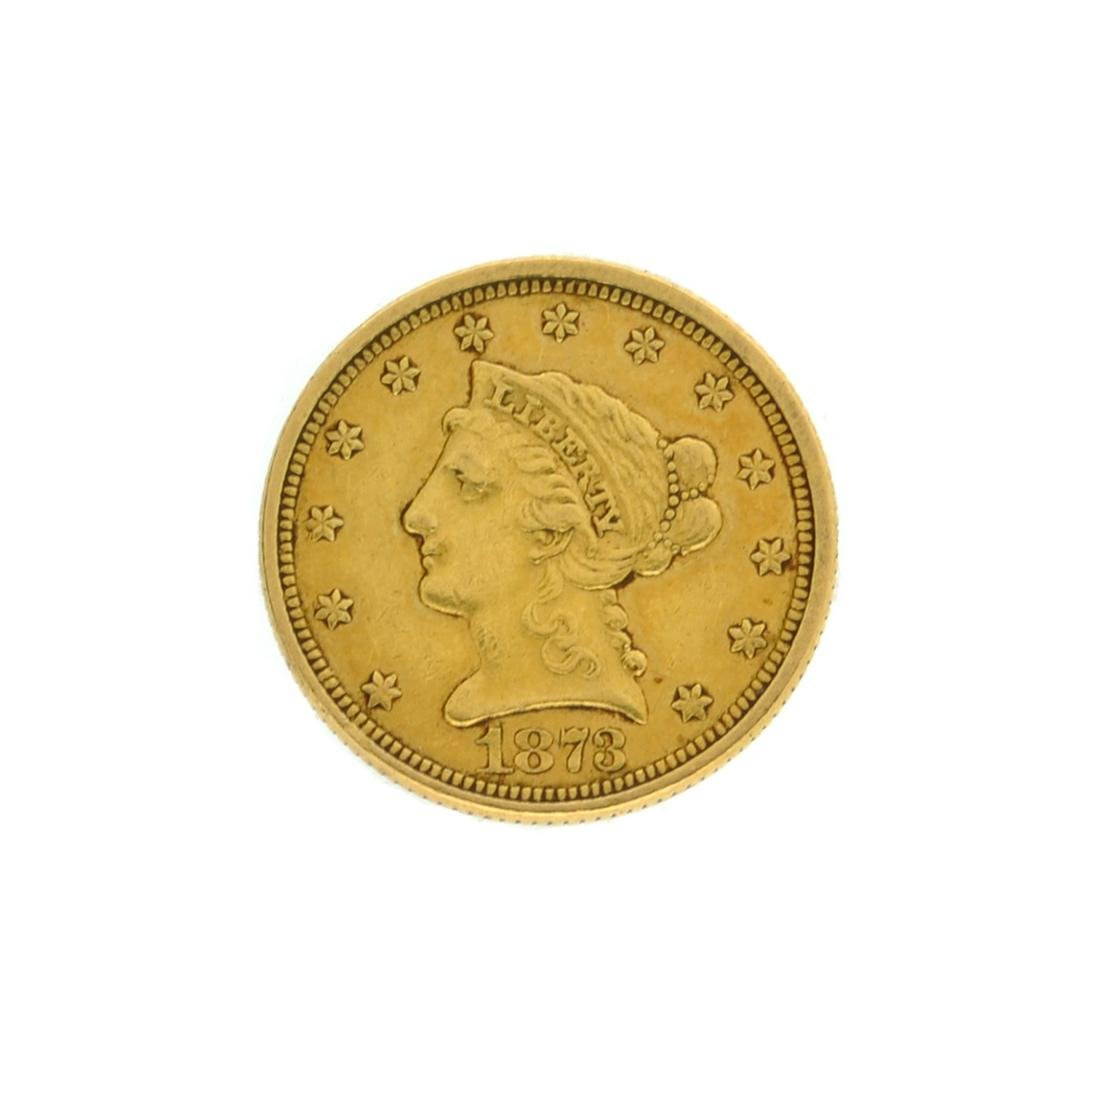 Extremely Rare 1873 $2.50 U.S. Liberty Head Gold Coin